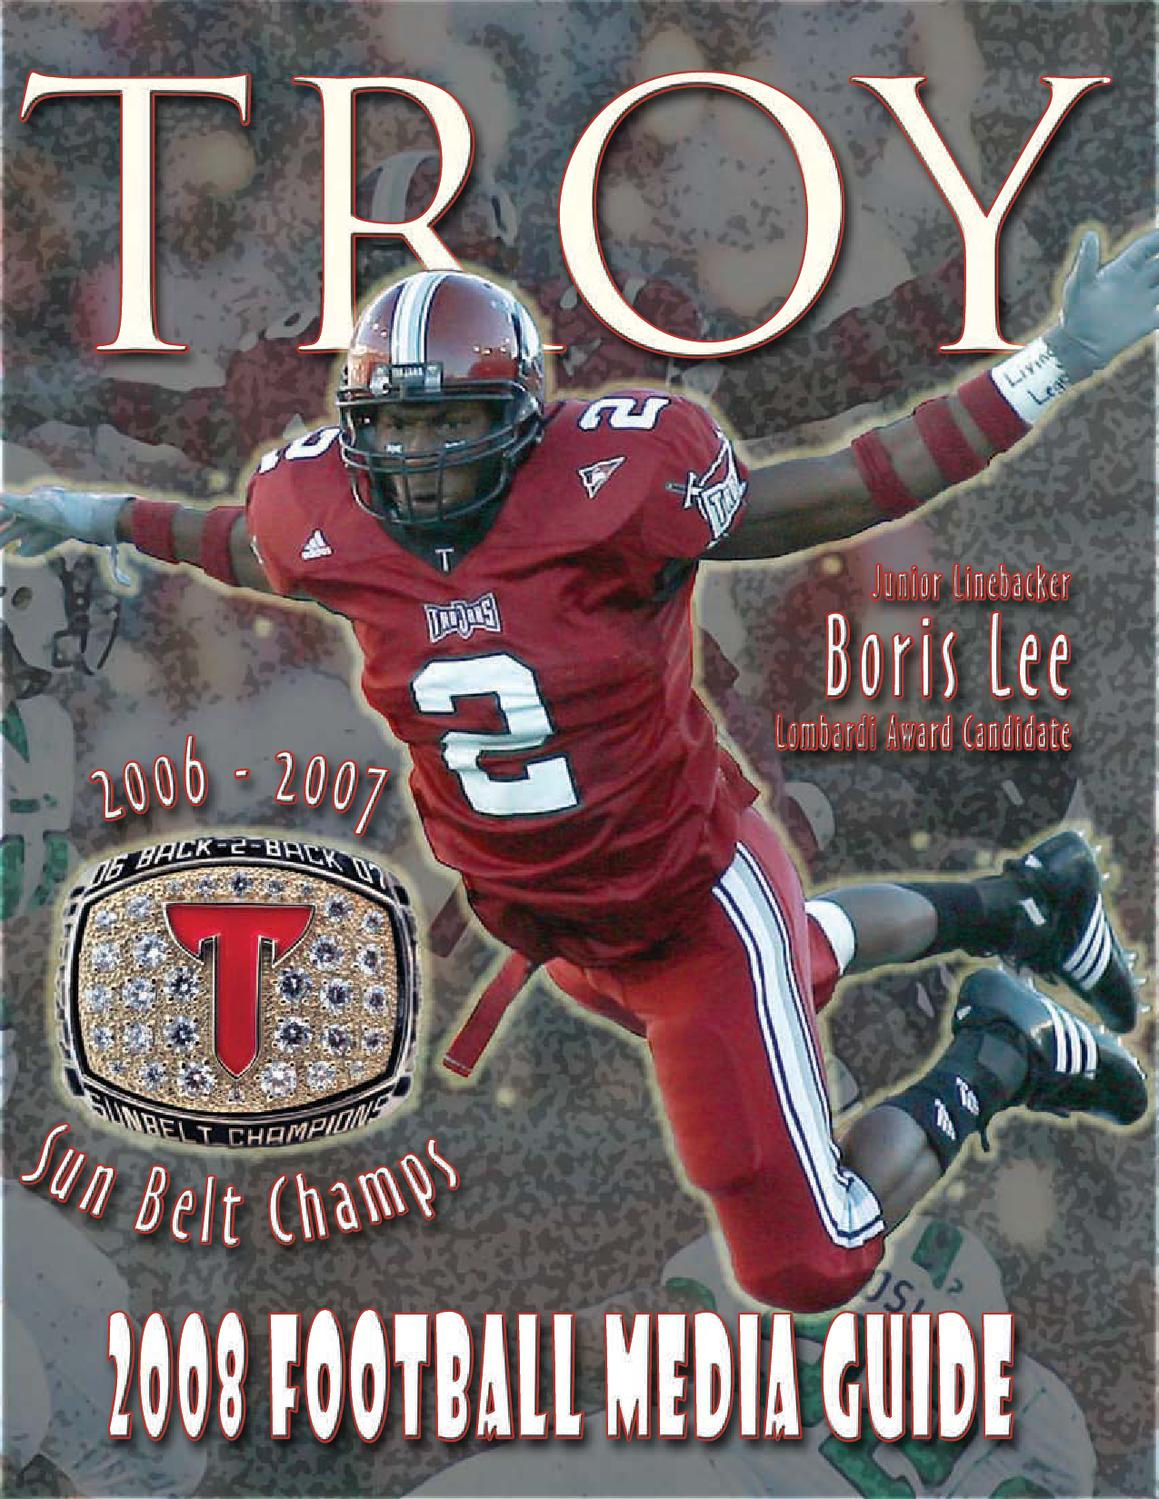 a84d1715d362 2008 Football Media Guide by Troy University Athletics - issuu